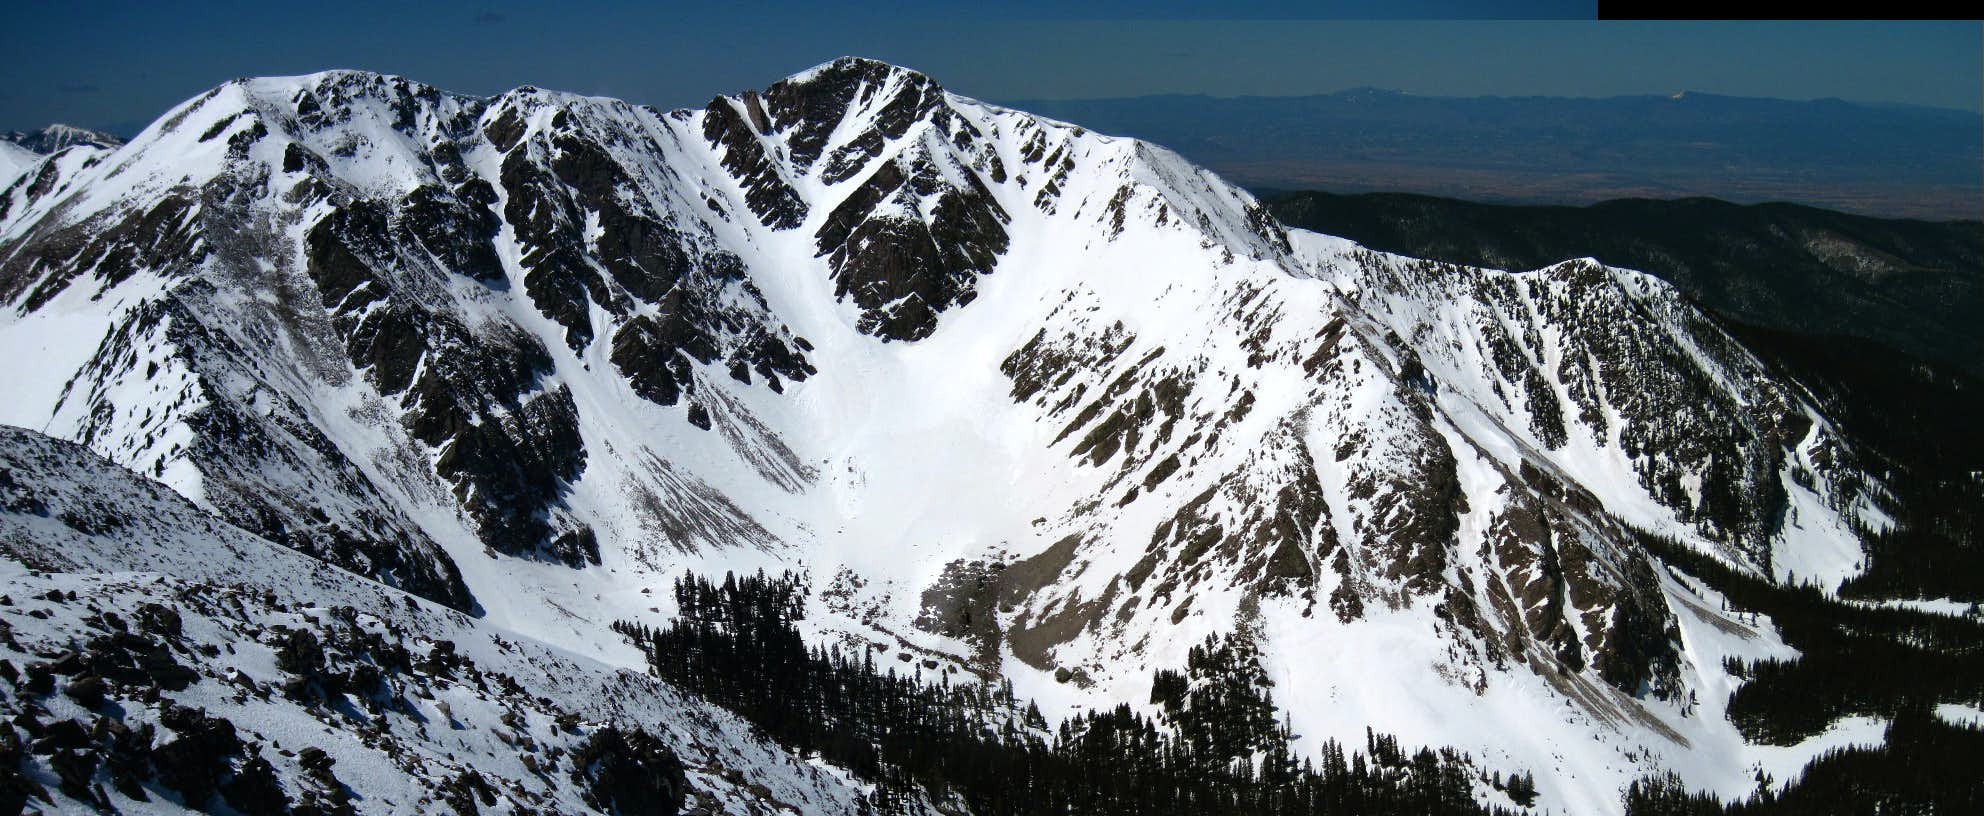 Middle Truchas Peak